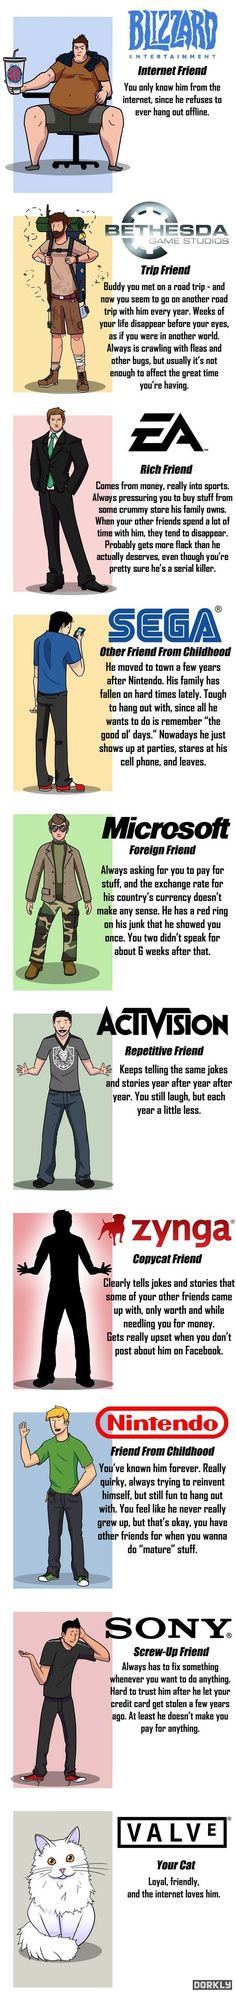 If game companies were your friends.